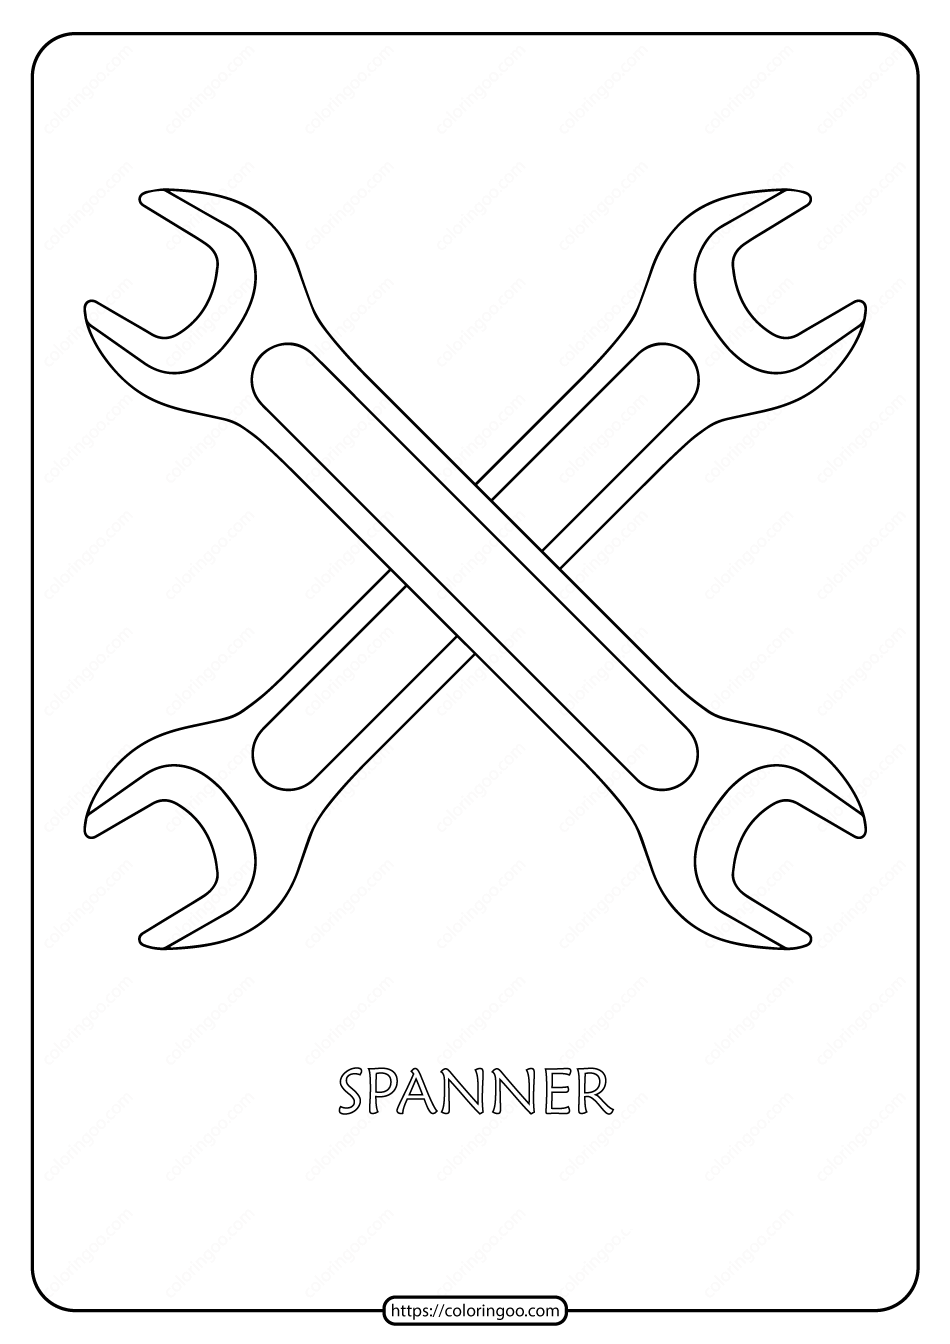 Free Printable Spanner Outline Pdf Coloring Page